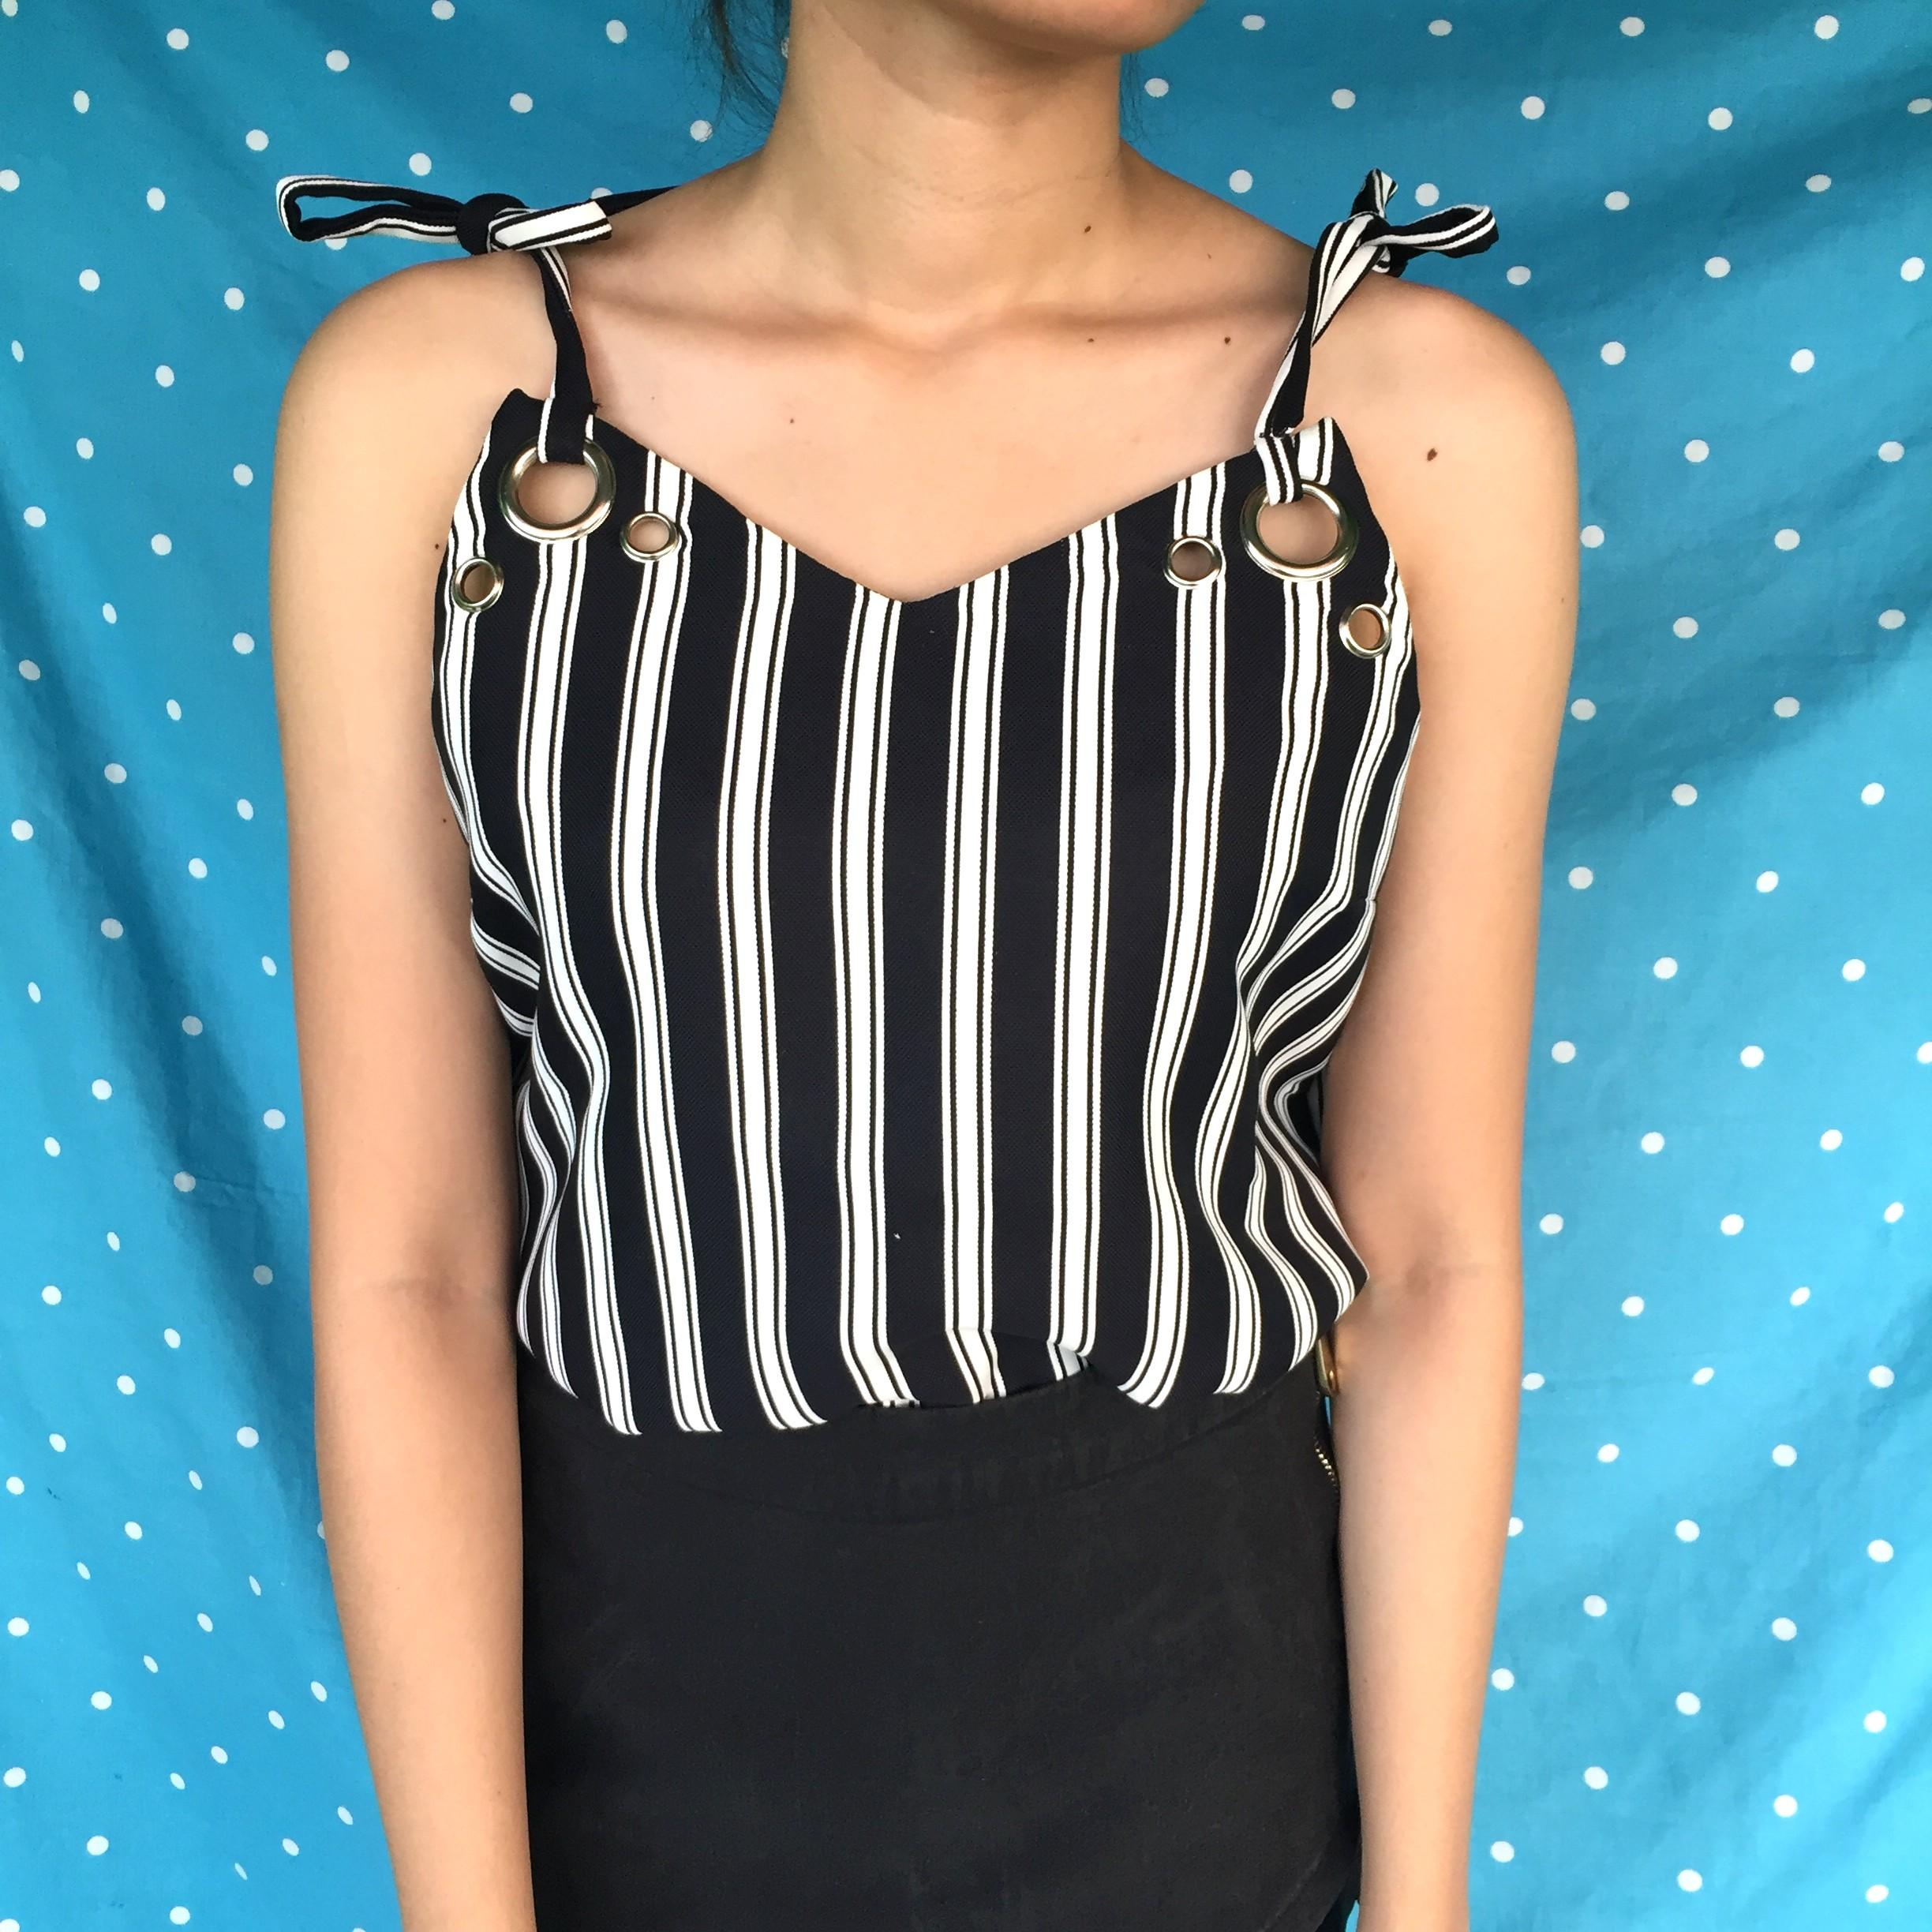 Sleveless striped black and white top